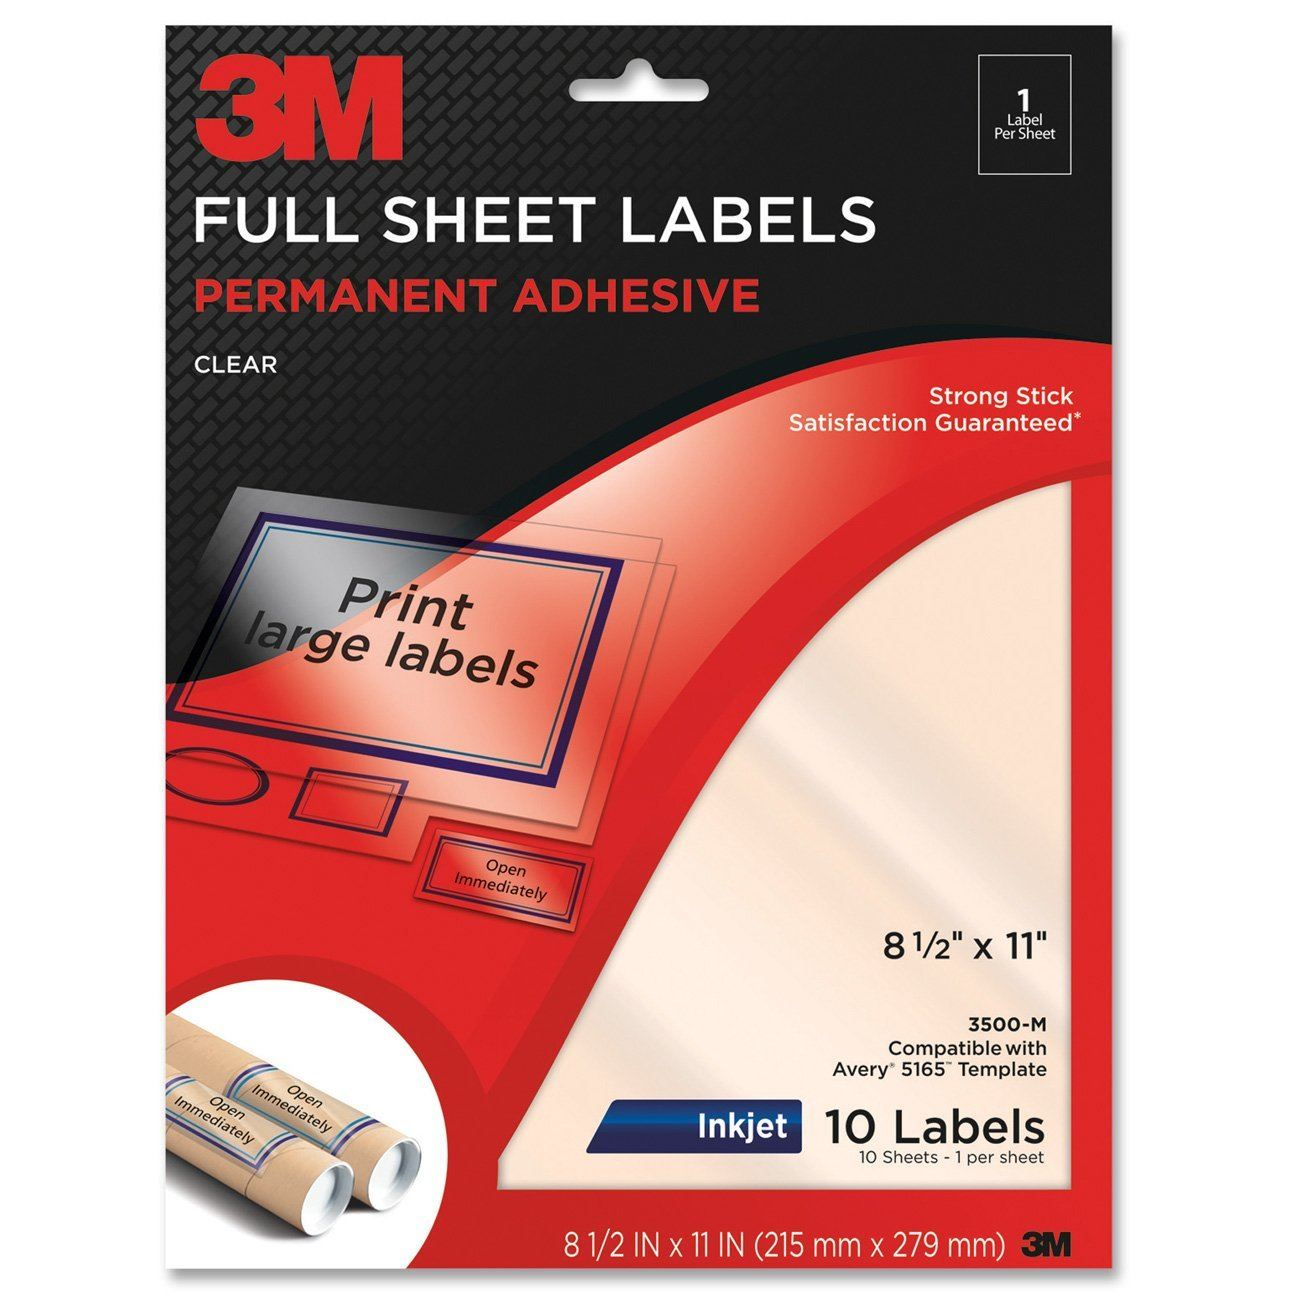 "3M Permanent Adhesive Full Sheet Invisible Labels, 8.5""x11"